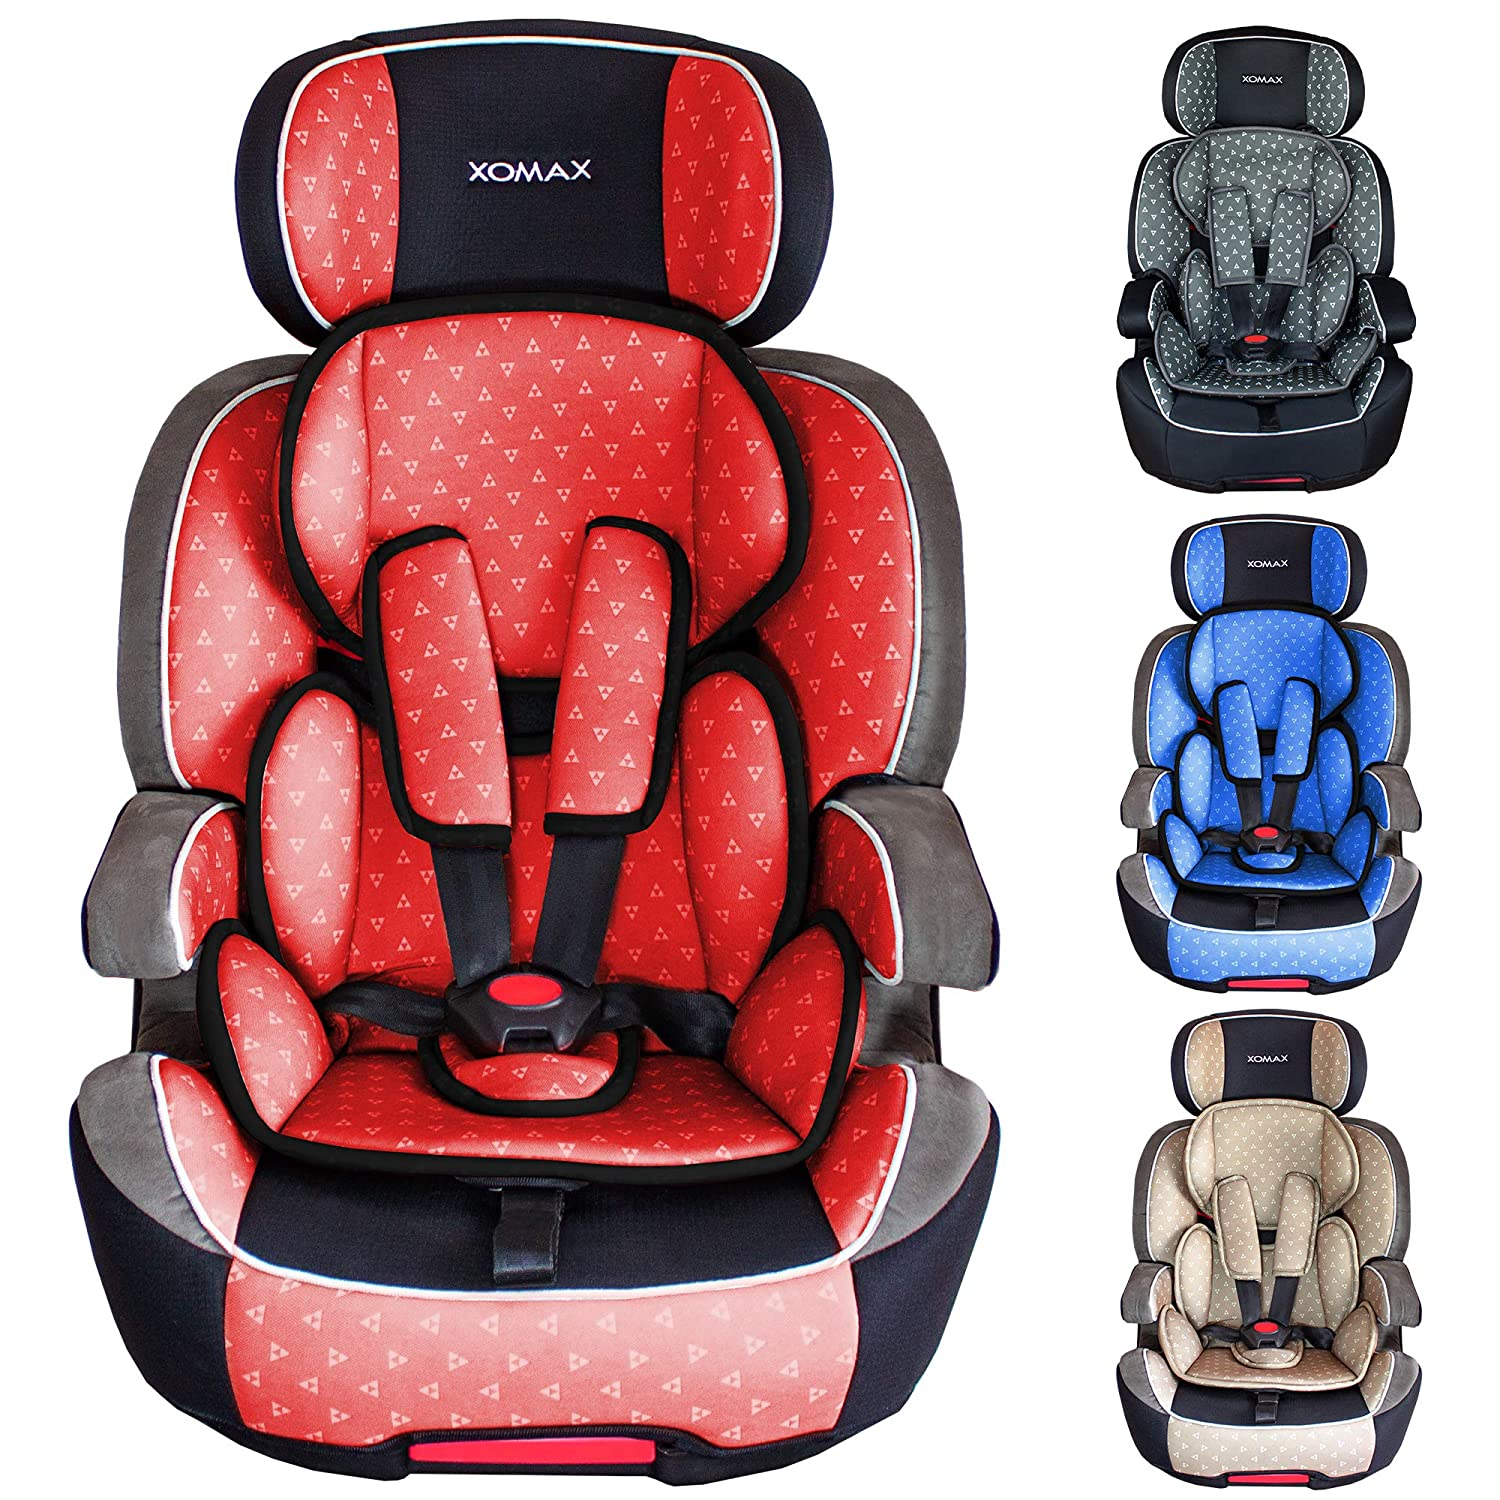 XOMAX XL-518 Child car seat with ISOFIX I growing with your child I 9-36 kg, 1-12 years, group 1/2/3 I 5-point harness and 3-point harness I cover removable and washable I ECE R44/04 I grey/black